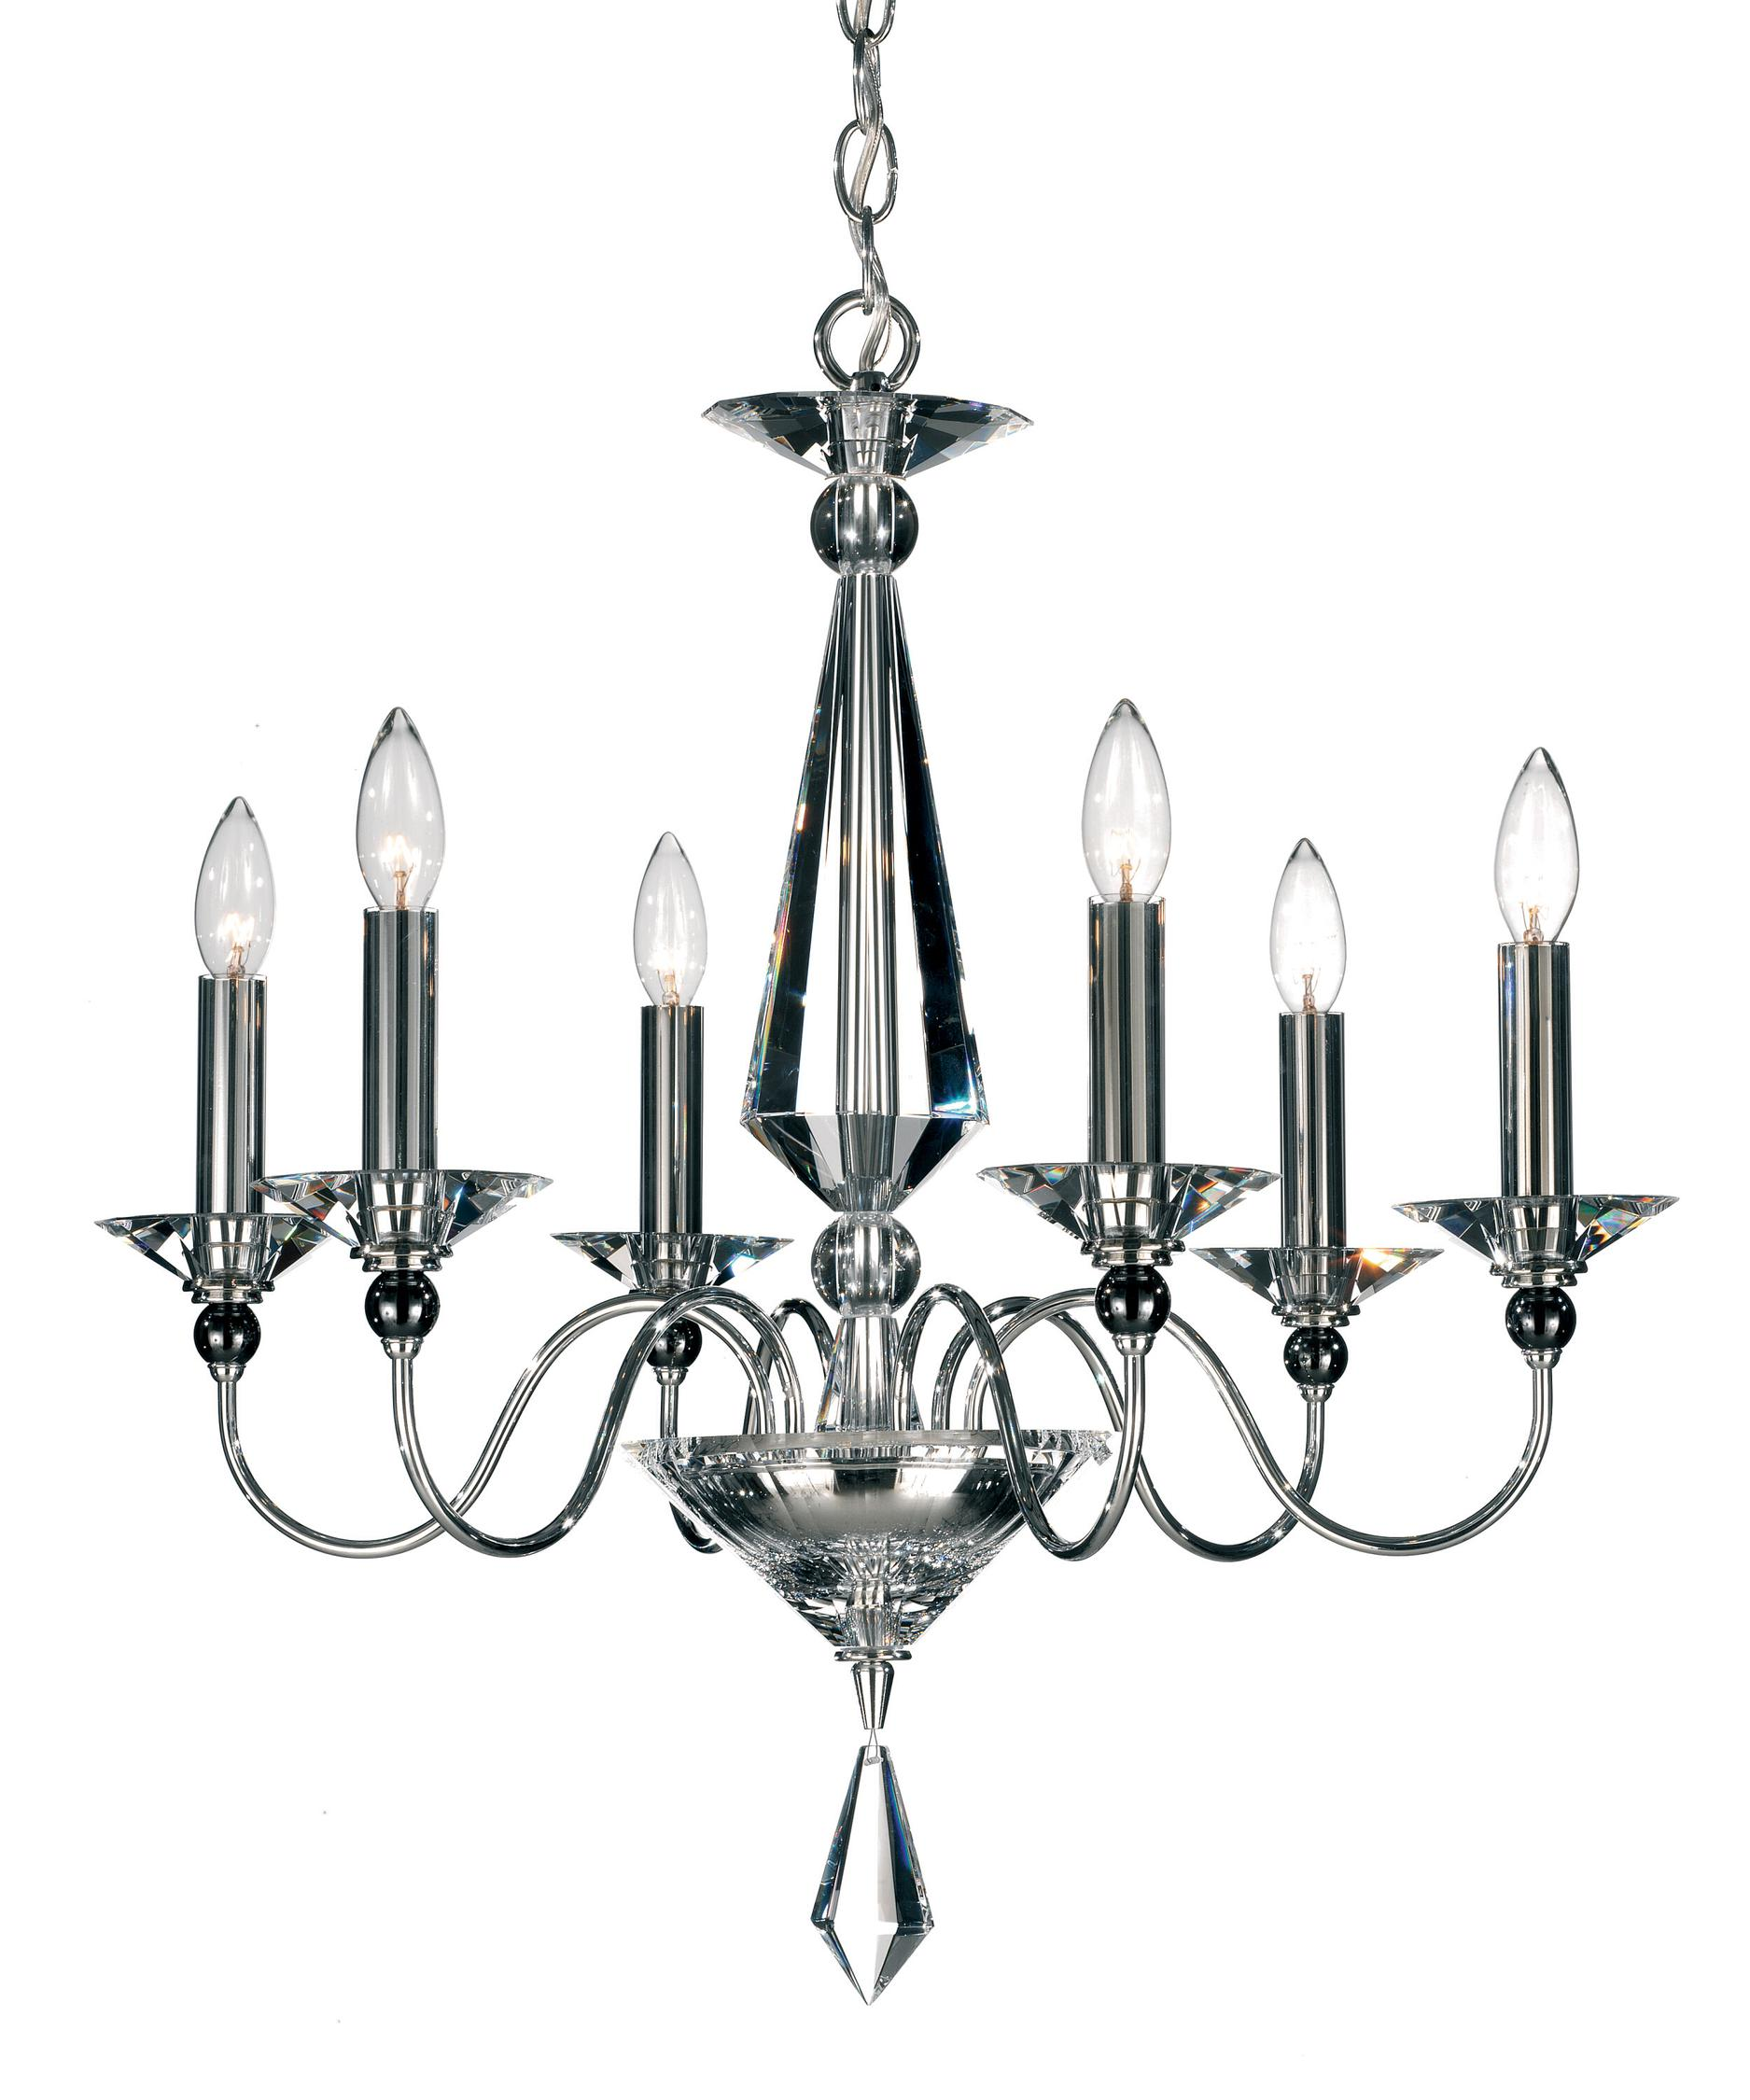 shown in silver finish and clear crystal - Schonbek Lighting